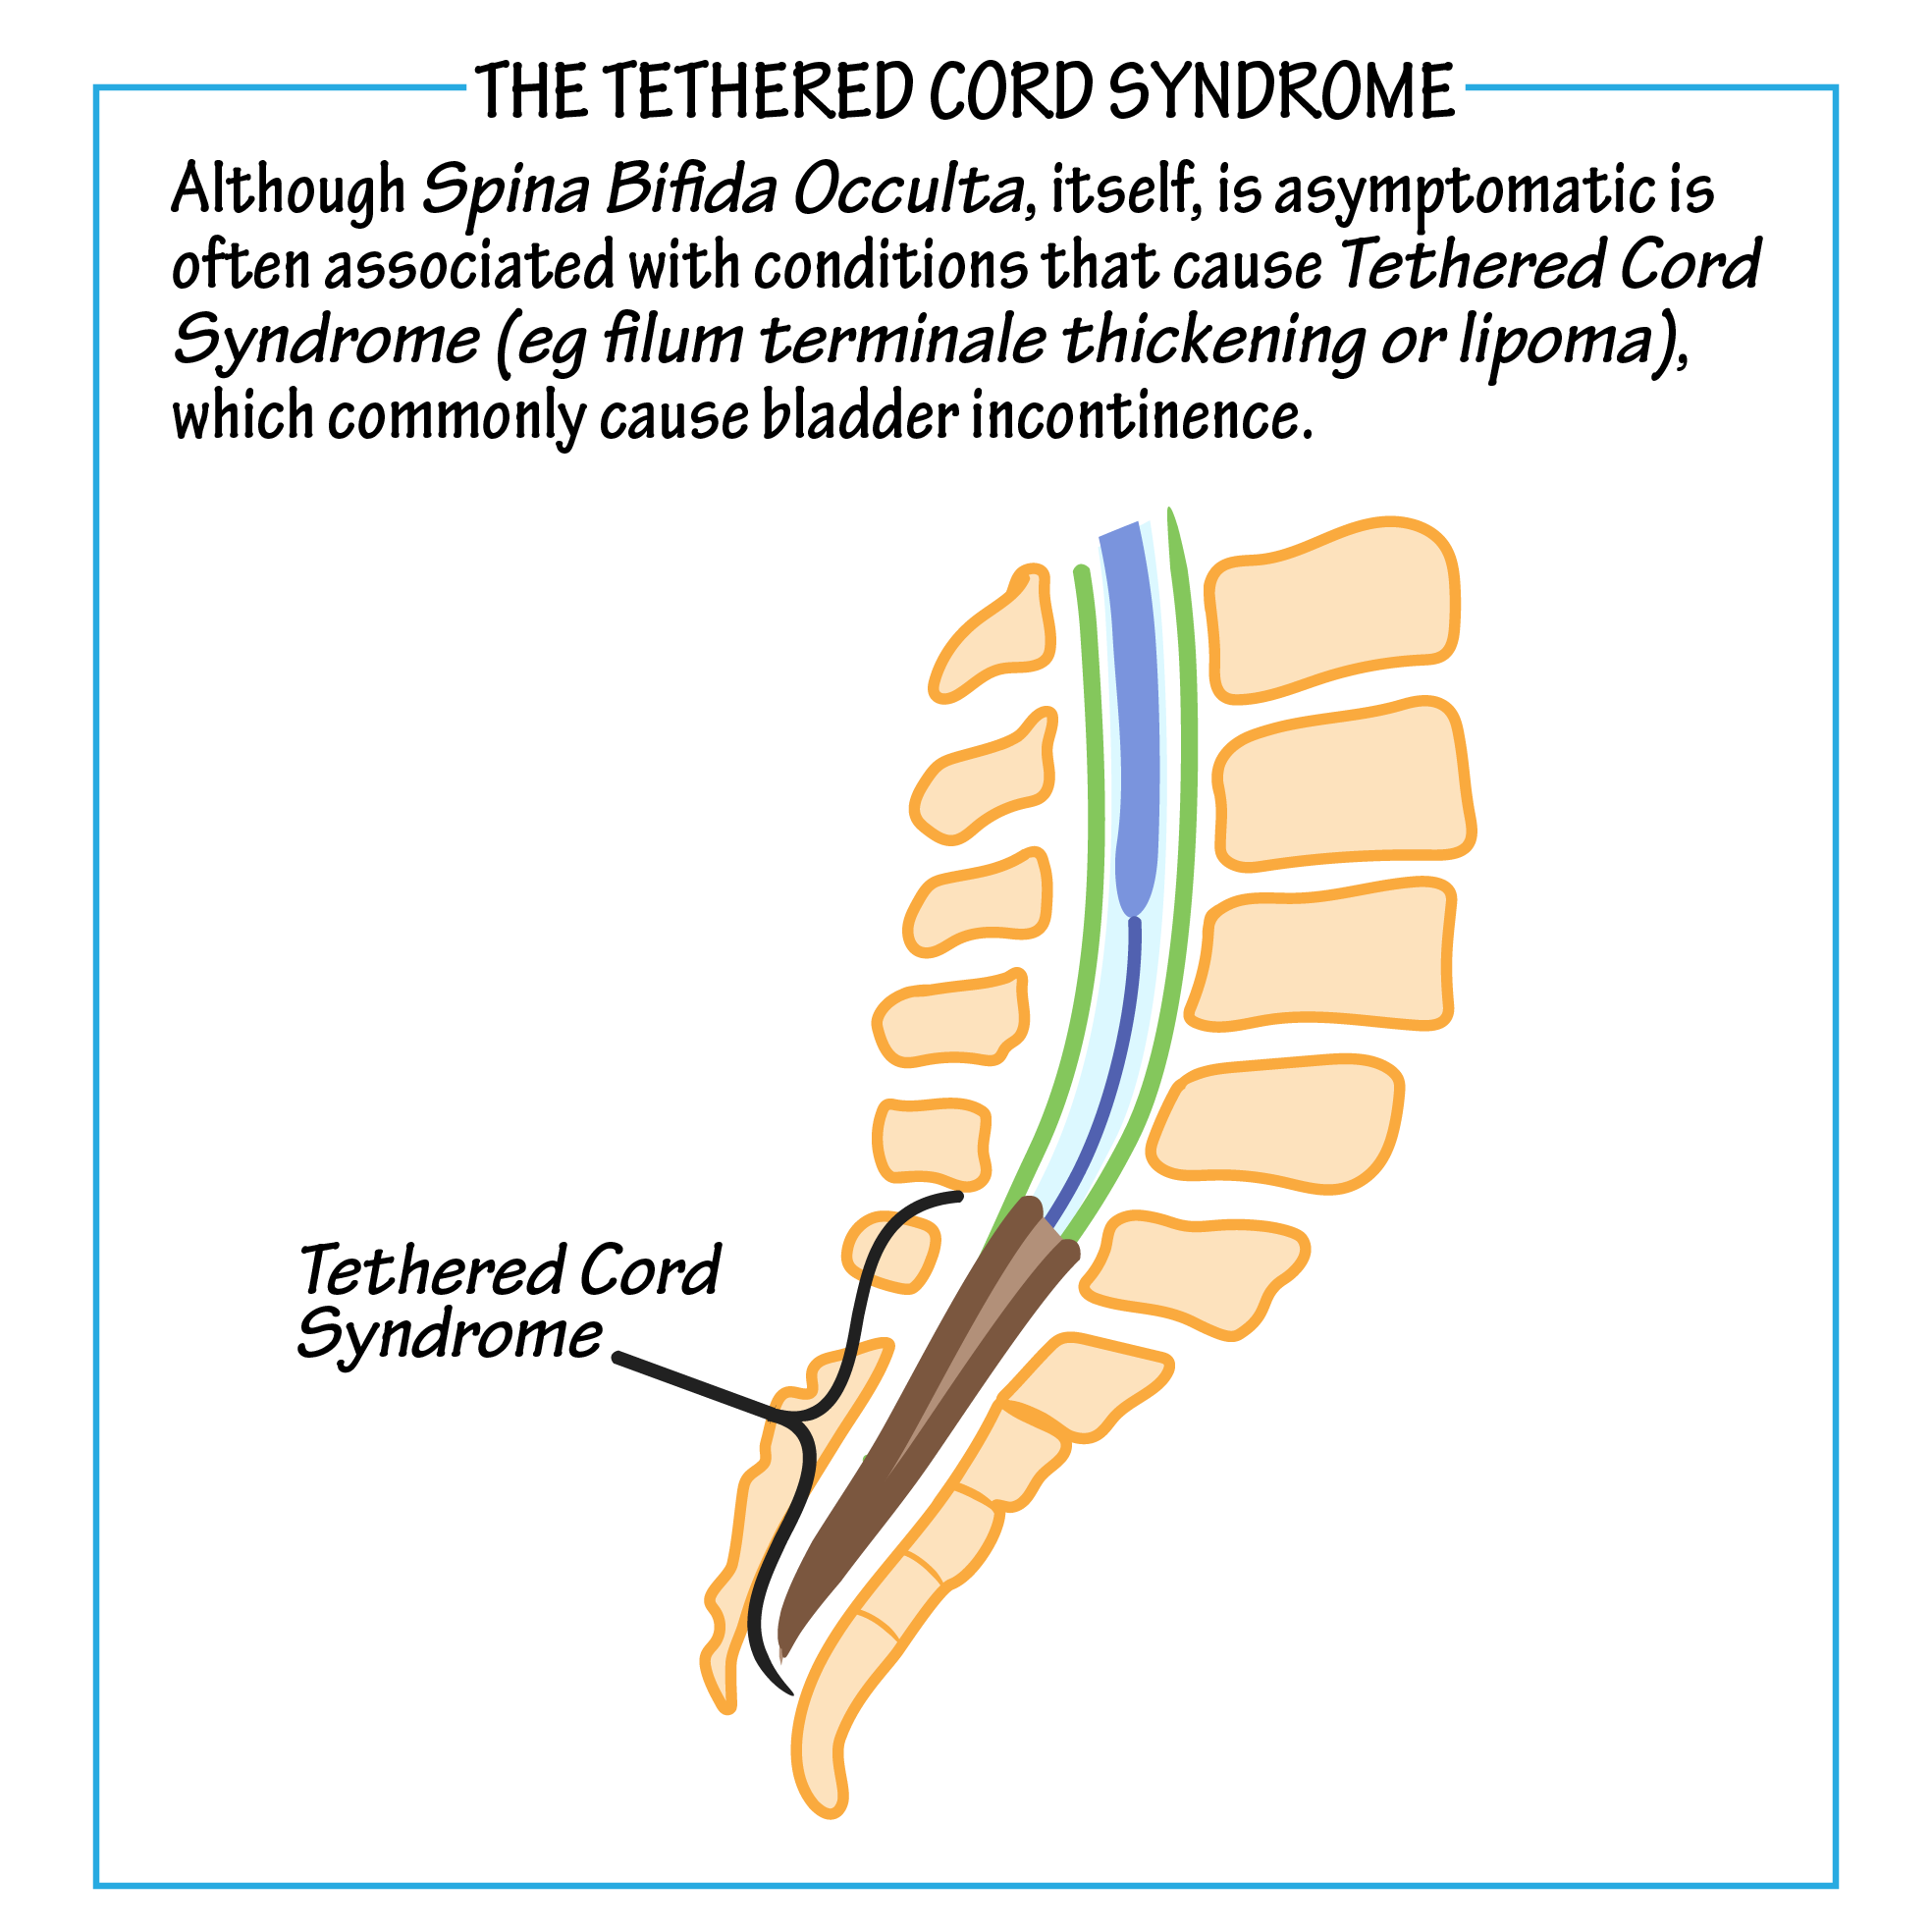 Tethered Cord Syndrome Neuroanatomy Flashcards Draw It To Know It The last portion of the pia mater. draw it to know it